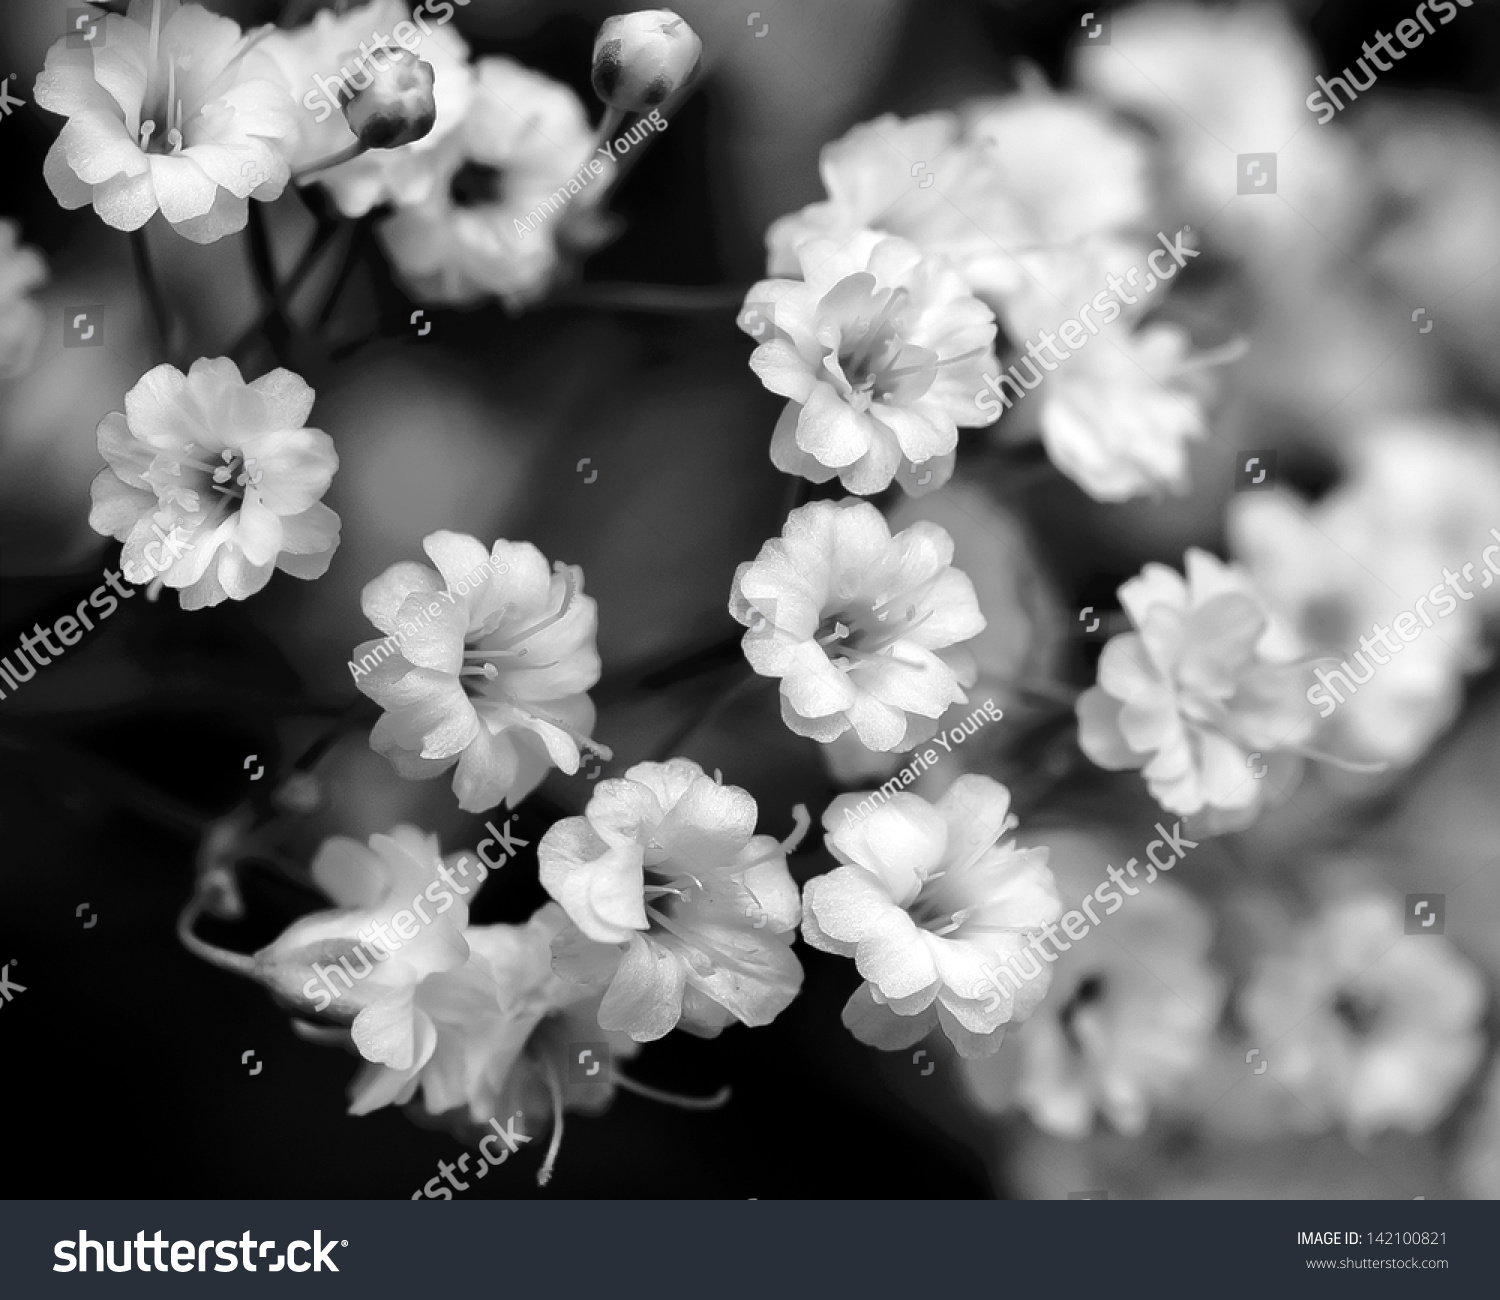 Black To Black Flowers 4: Black White Flowers Babys Breath Stock Photo 142100821